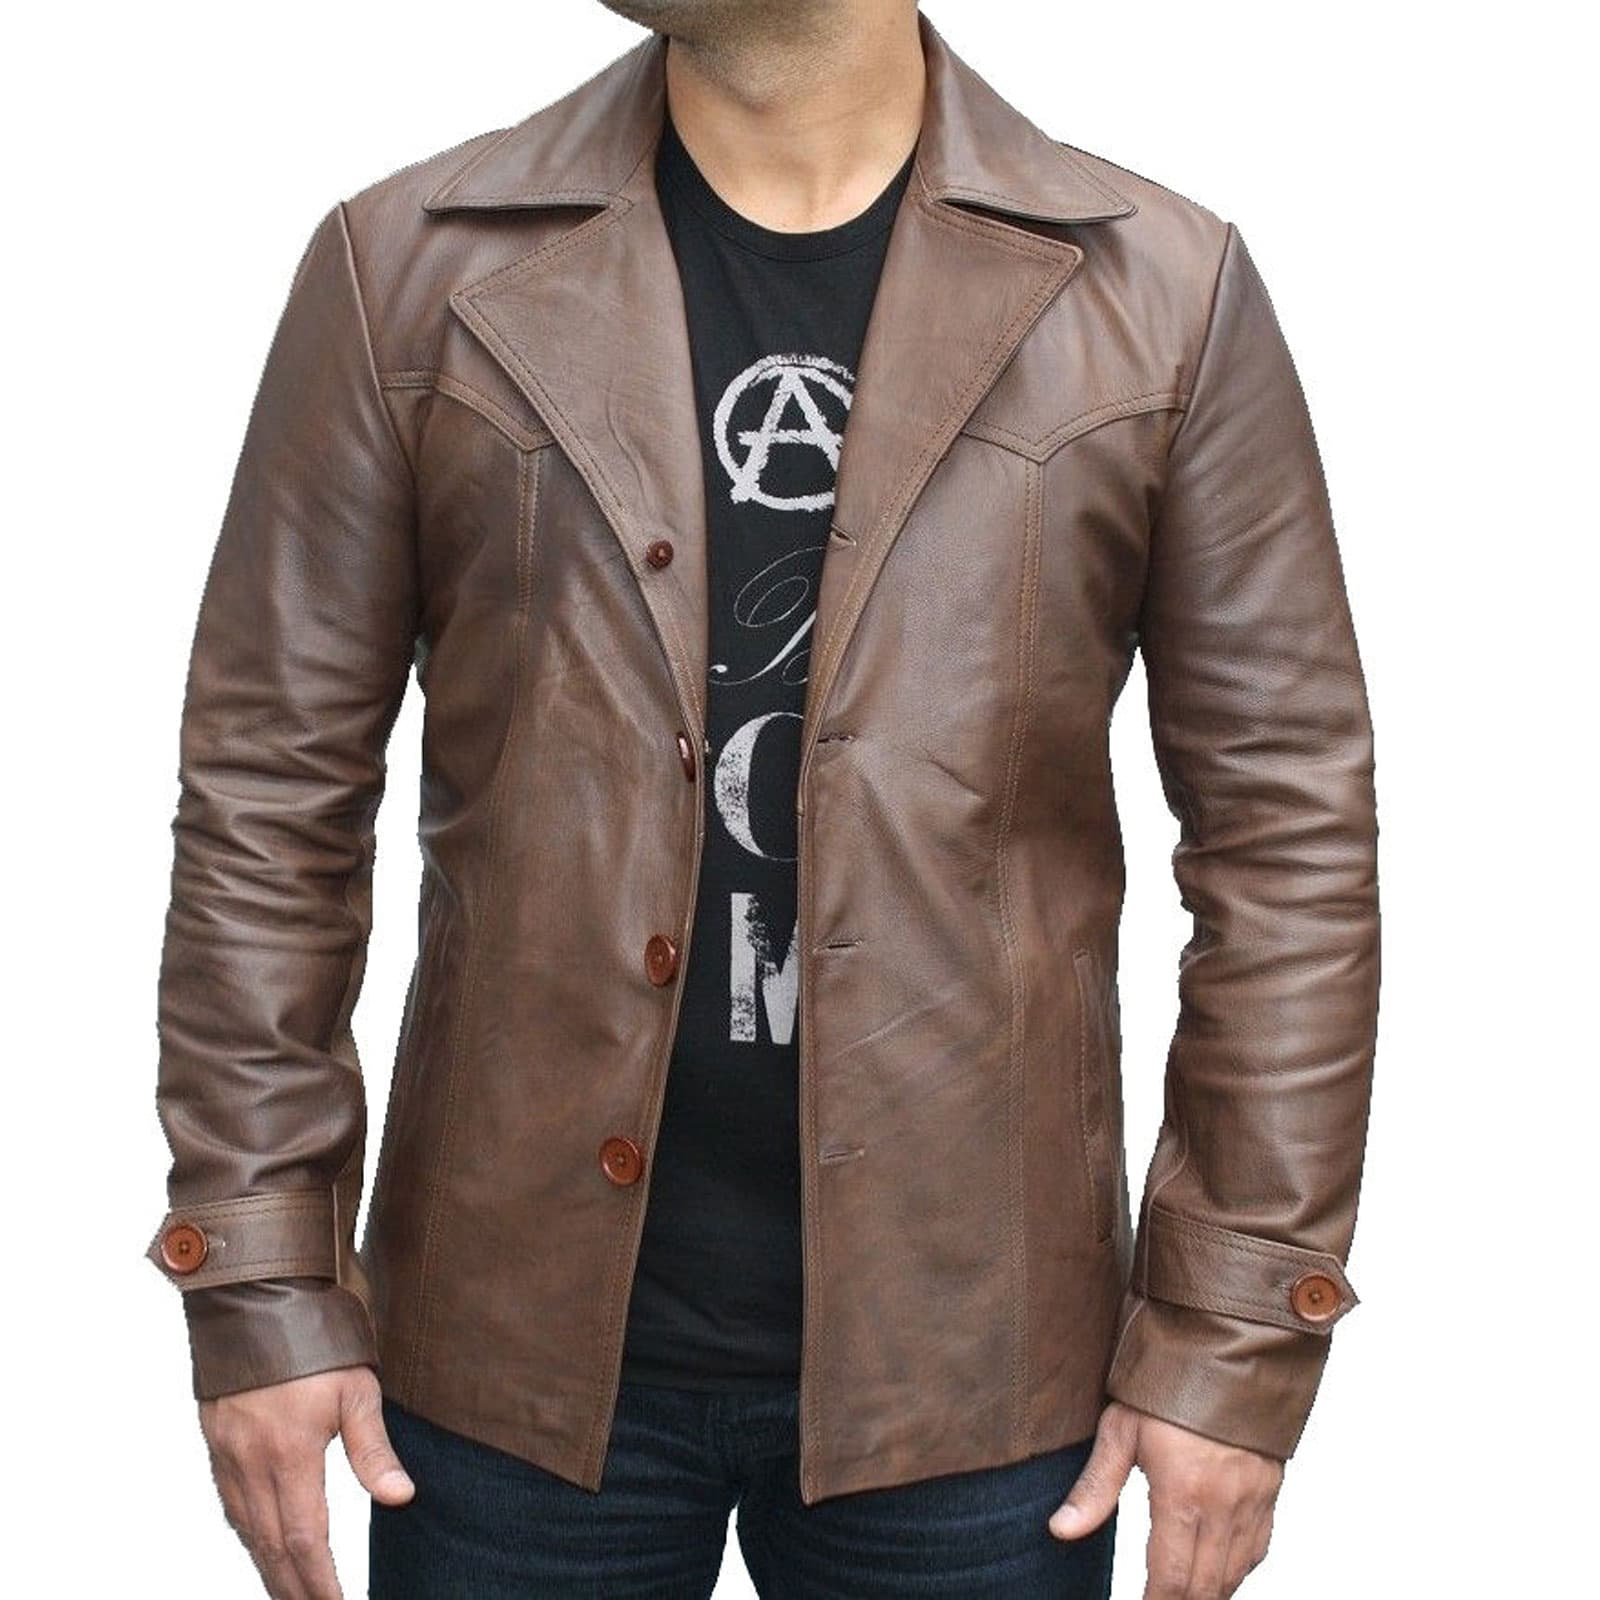 Vintage style leather jackets